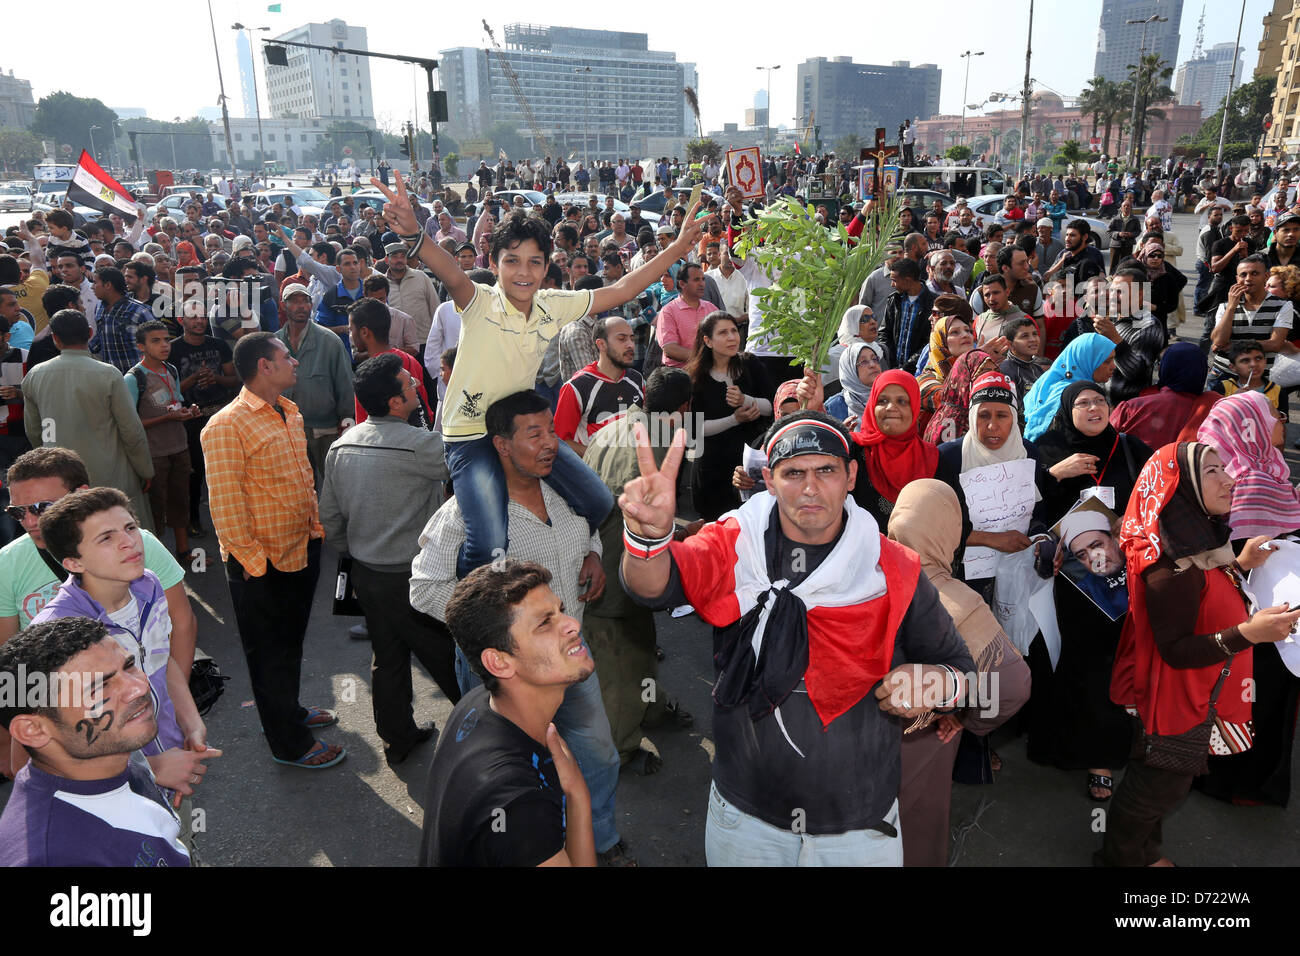 peaceful christian-muslim mass rally in Tahrir Square, Cairo, Egypt - Stock Image